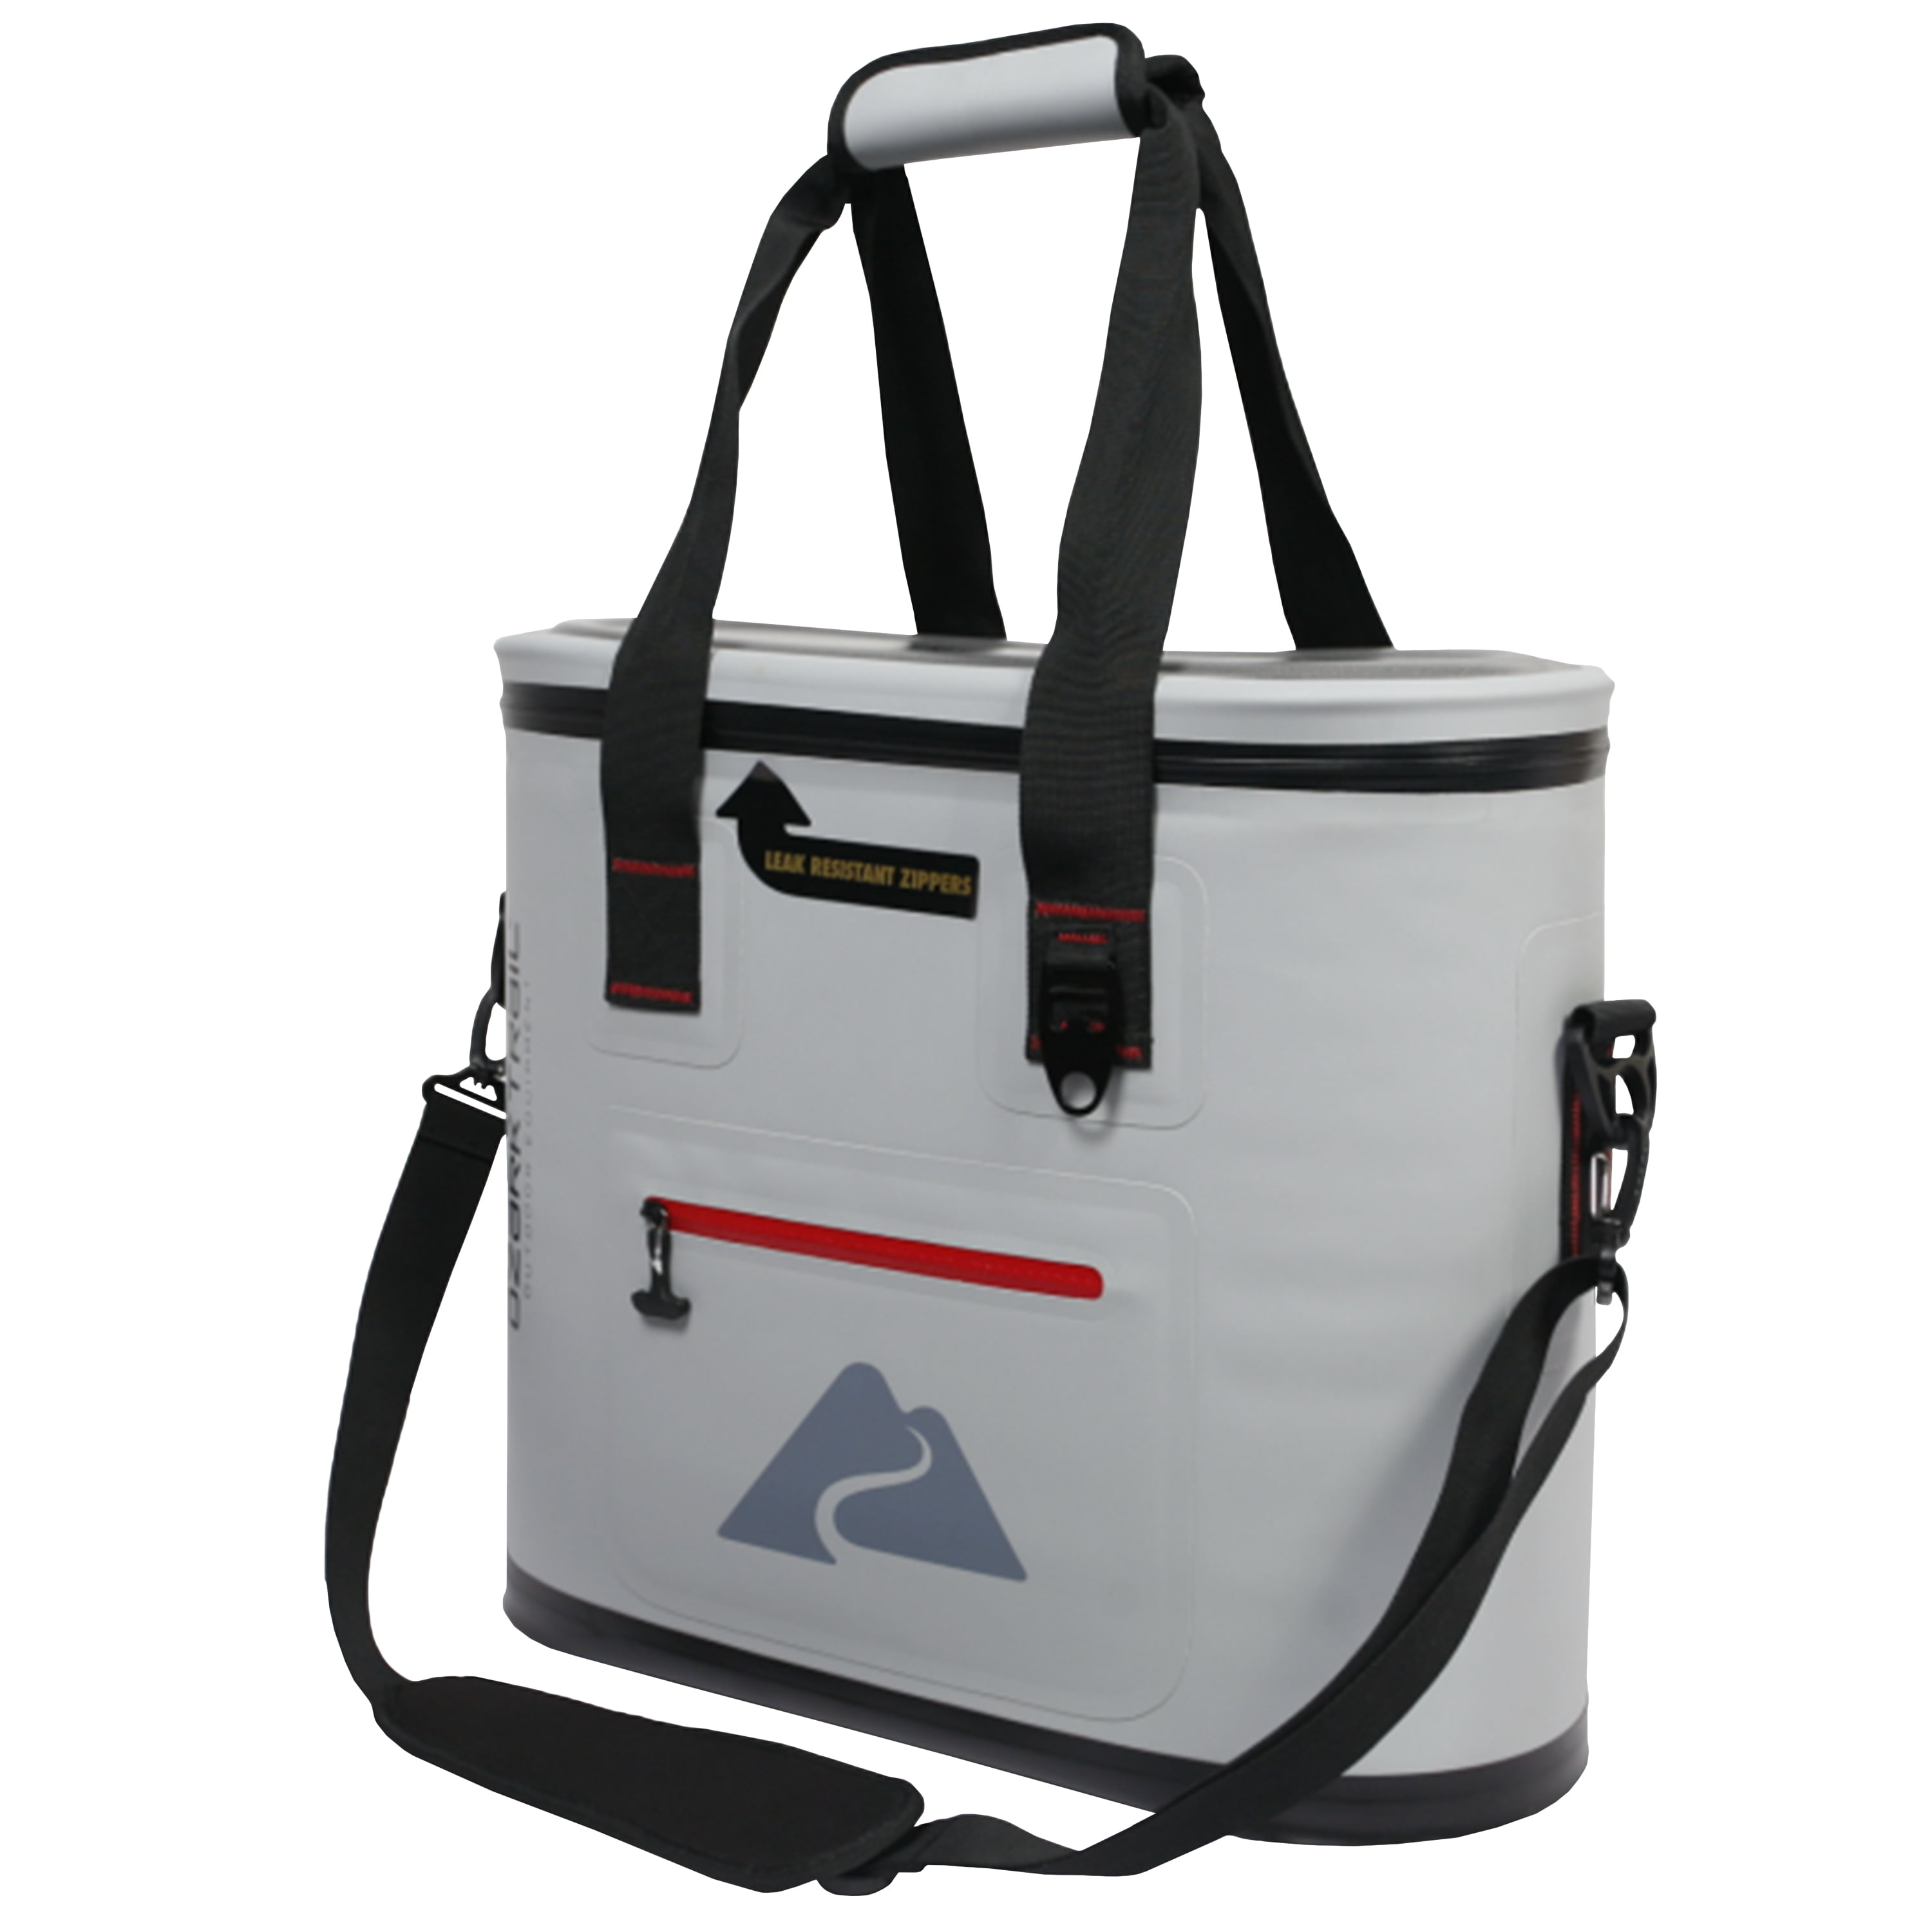 Ozark Trail 30 Can Leaktight Cooler With Heat Welded Body